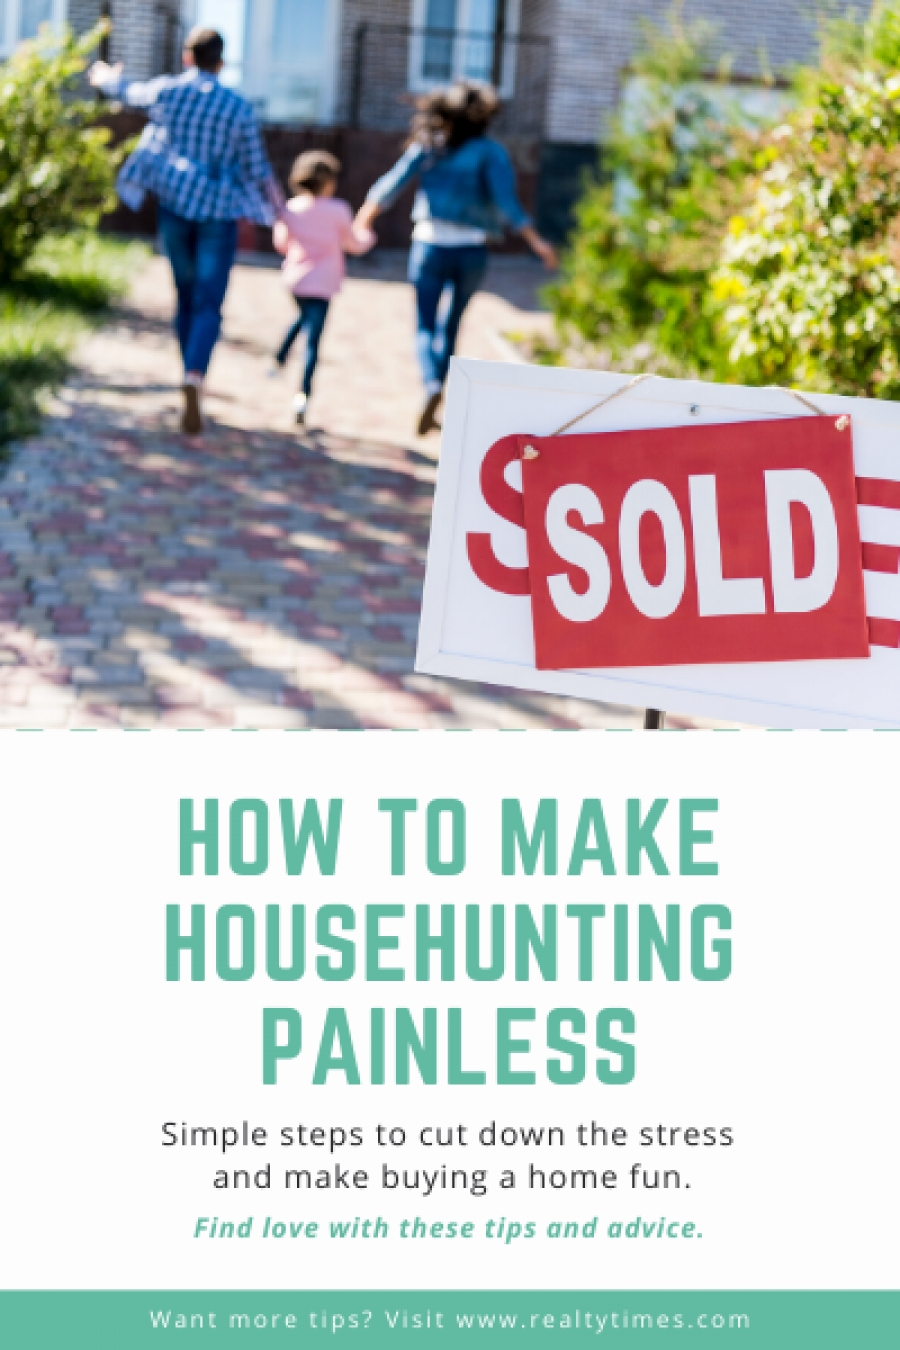 How to make house hunting painless